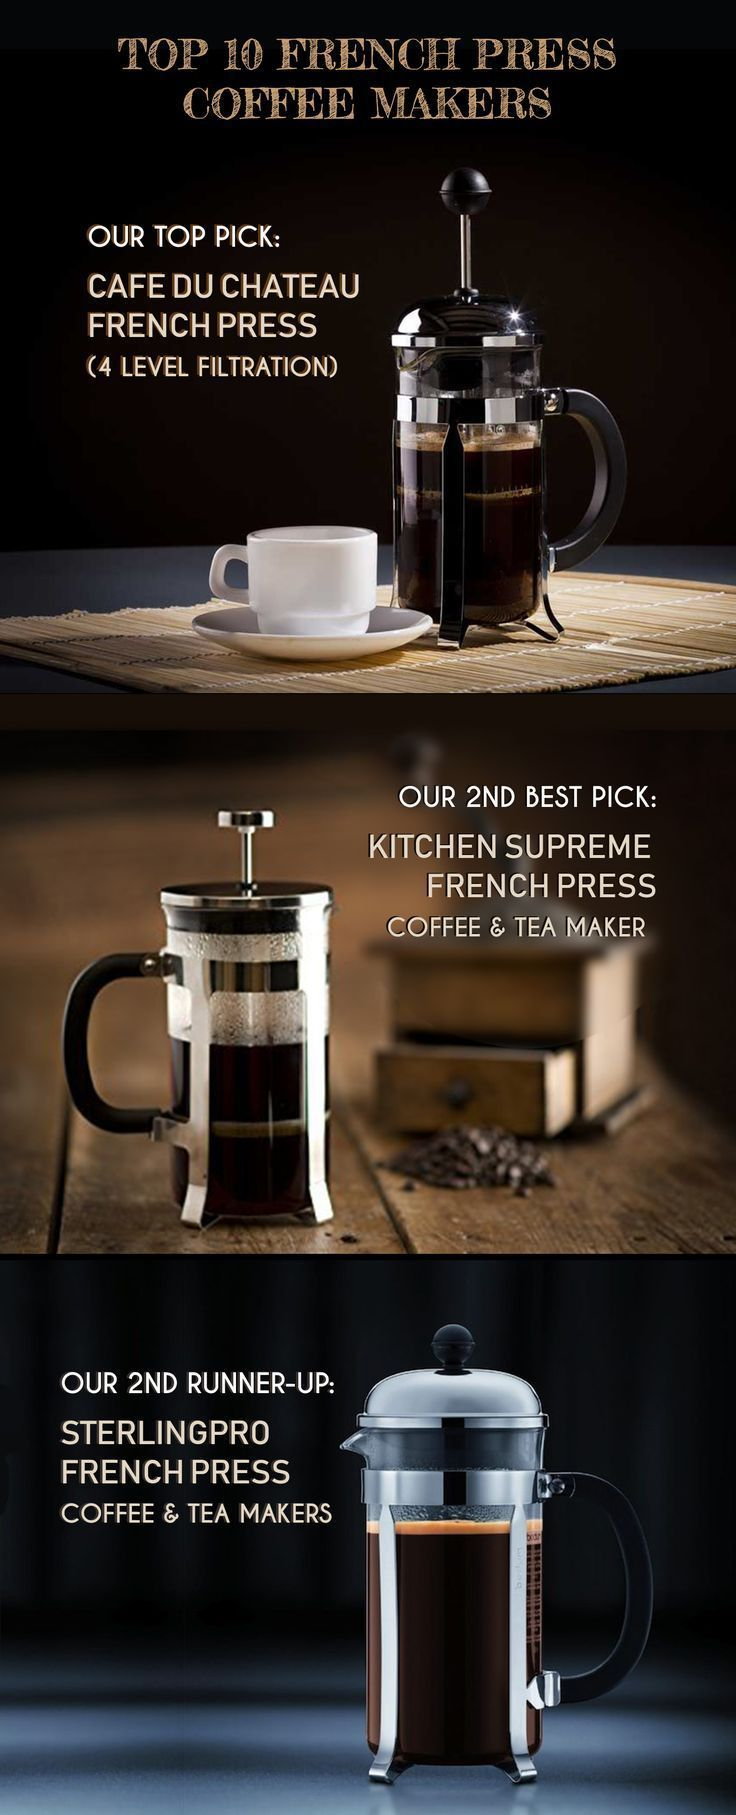 A French press makes coffee making simple. You can't go